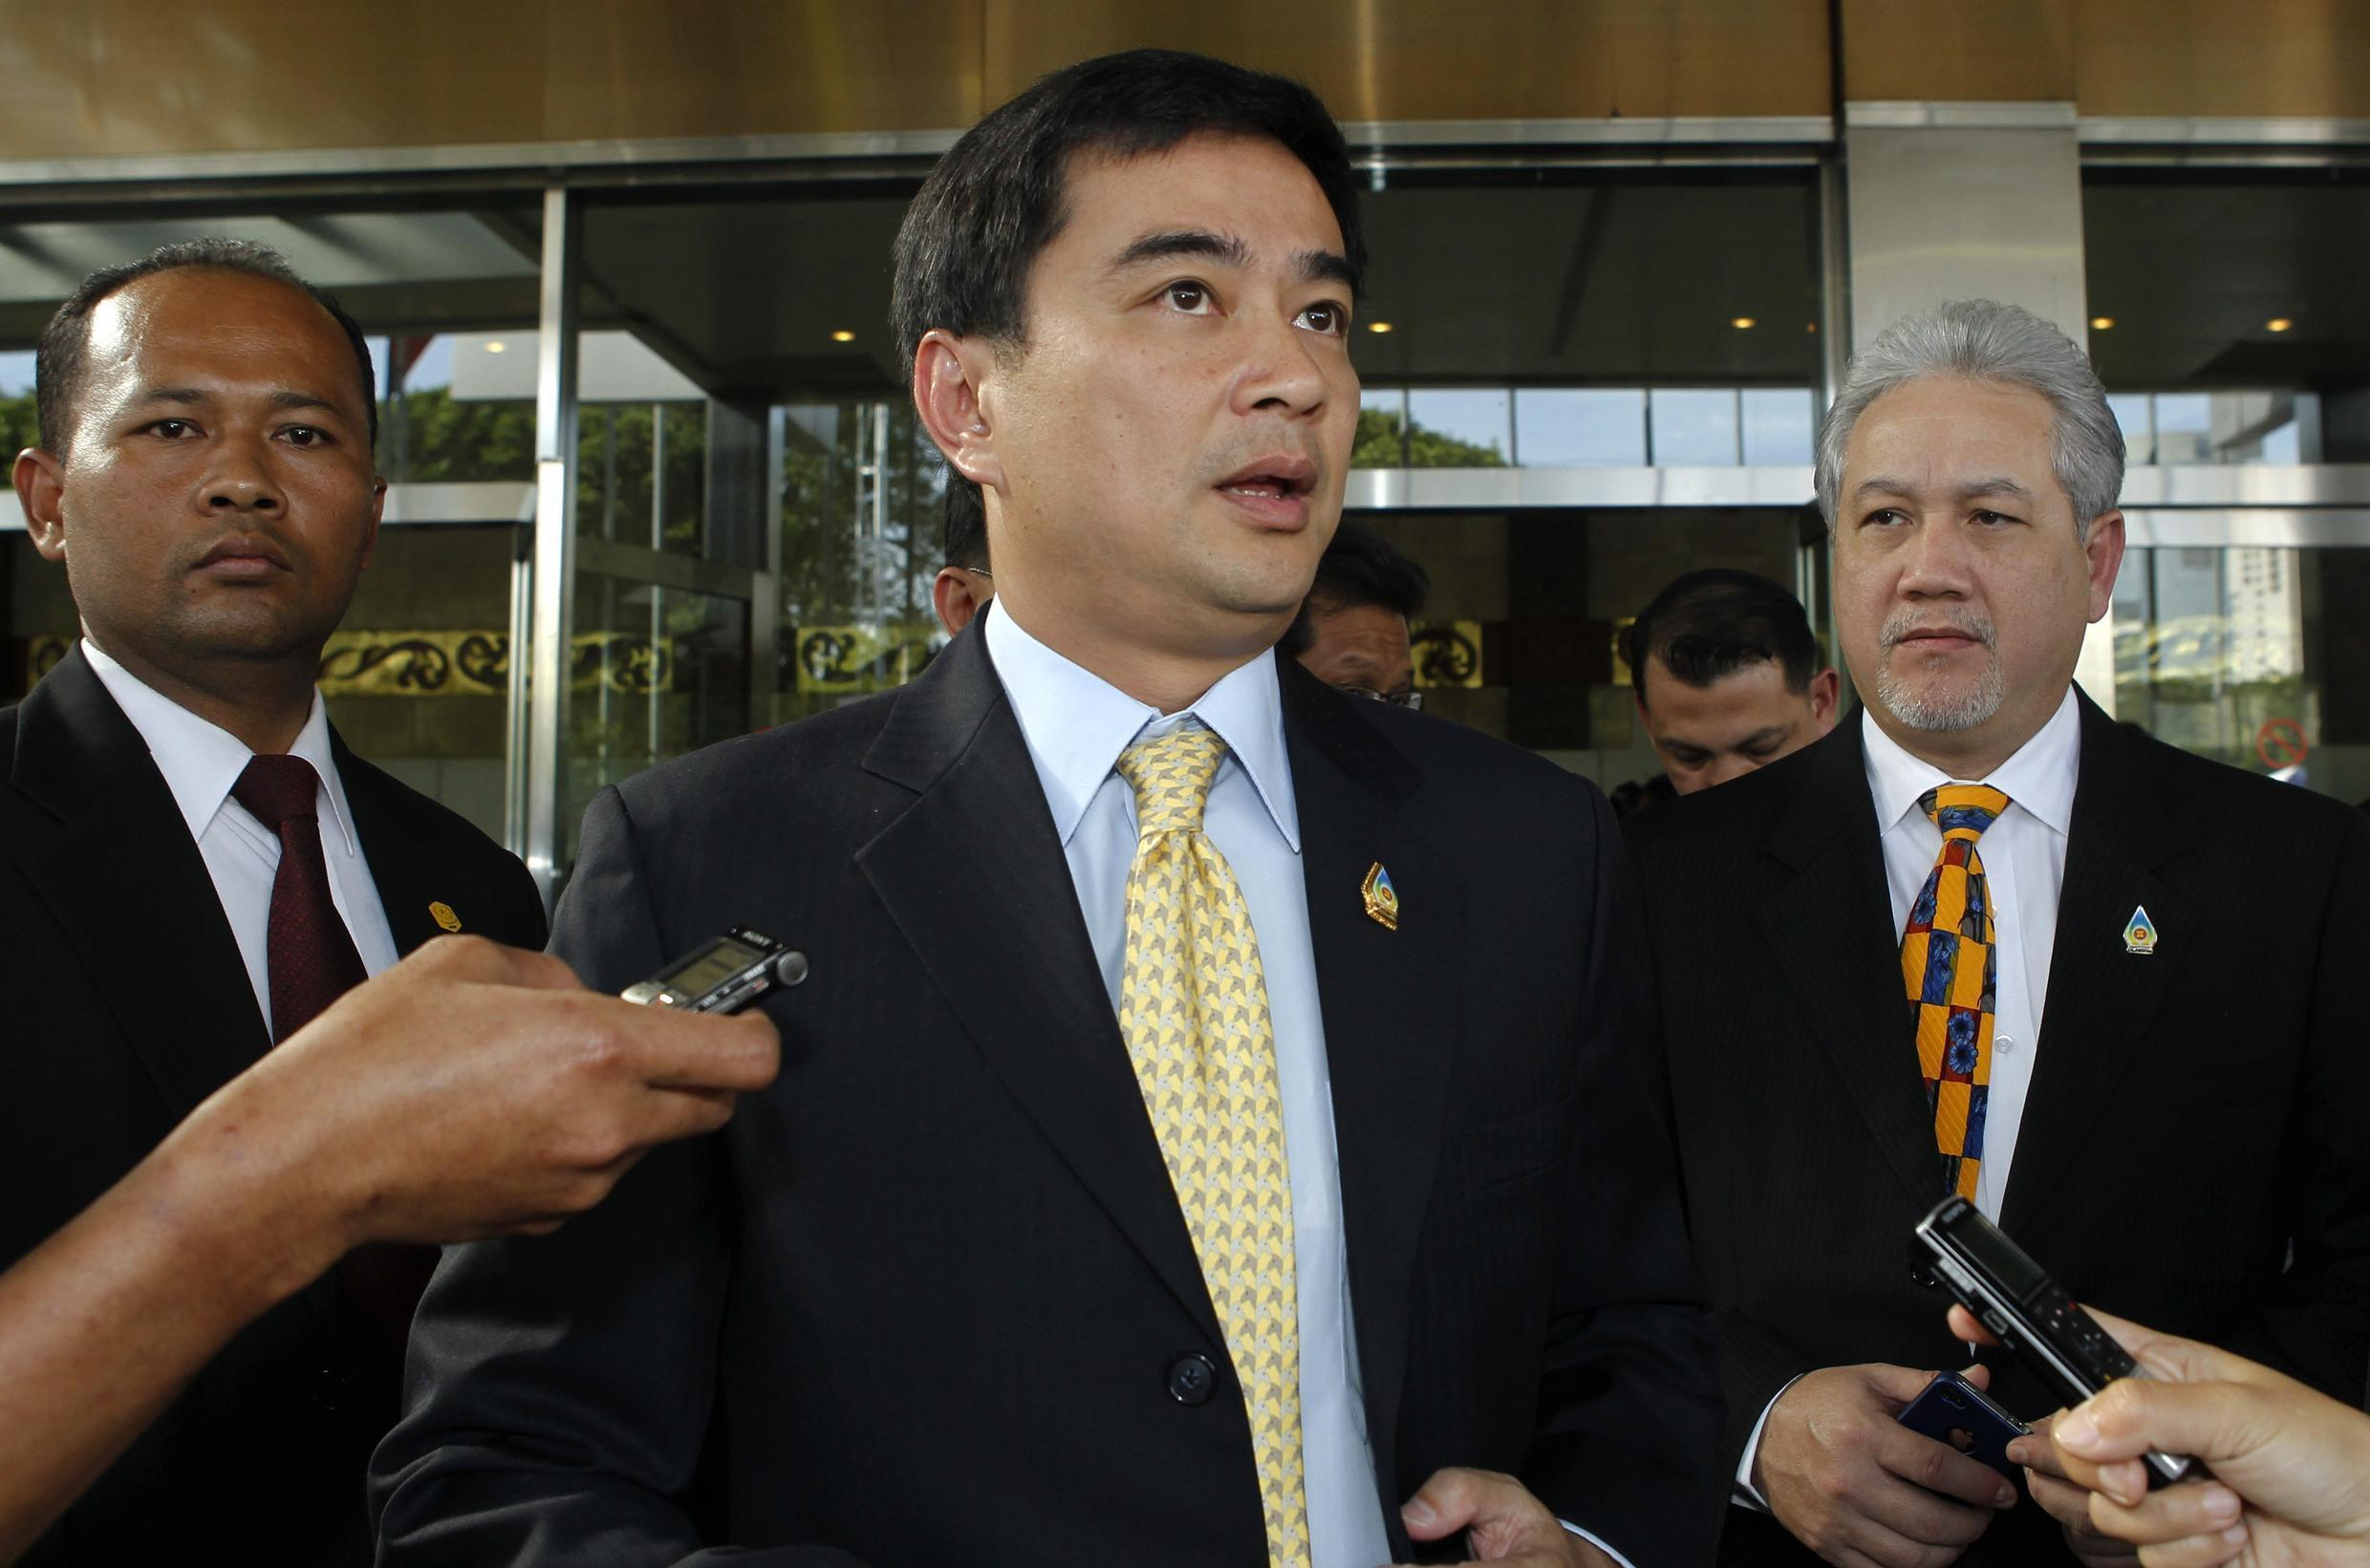 Thailand's Prime Minister Abhisit Vejjajiva has announced general elections on 3 July